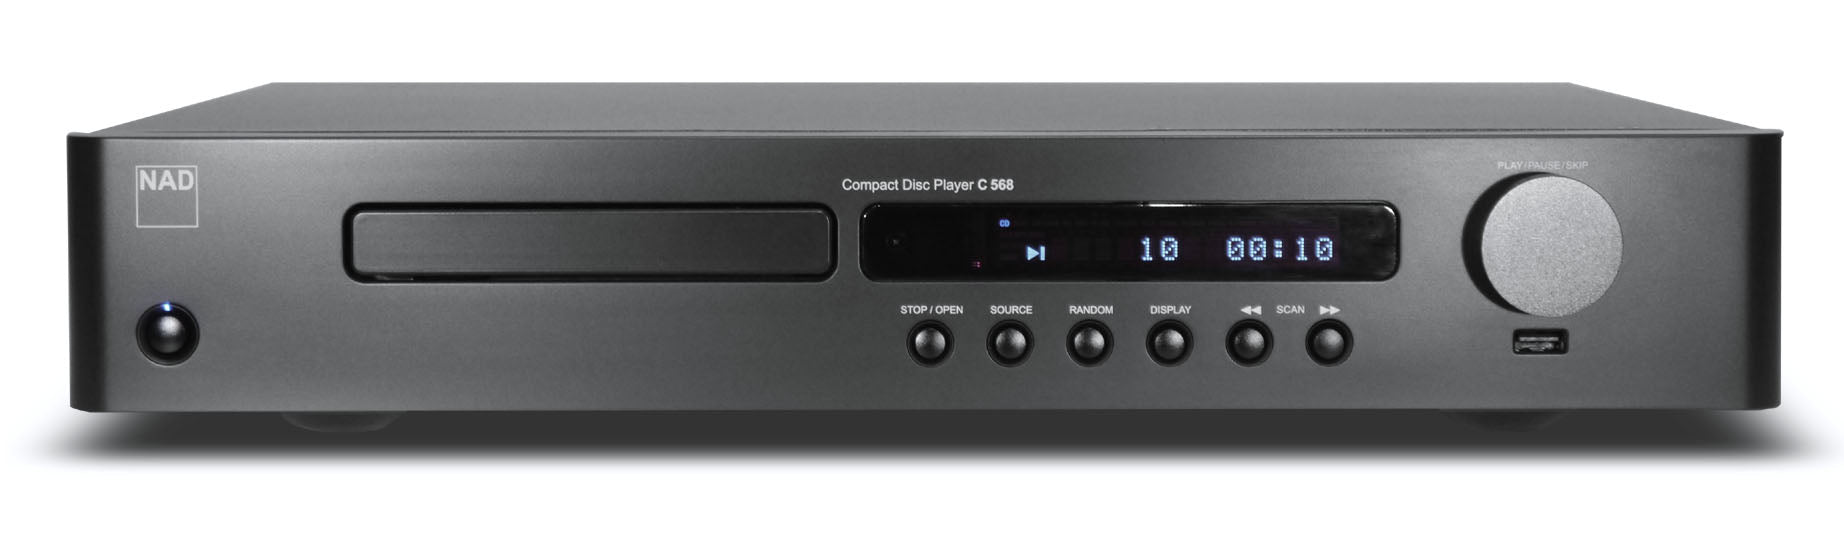 NAD Compact Disc player C 568 - A V Components - NAD Electronics - Topchoice Electronics